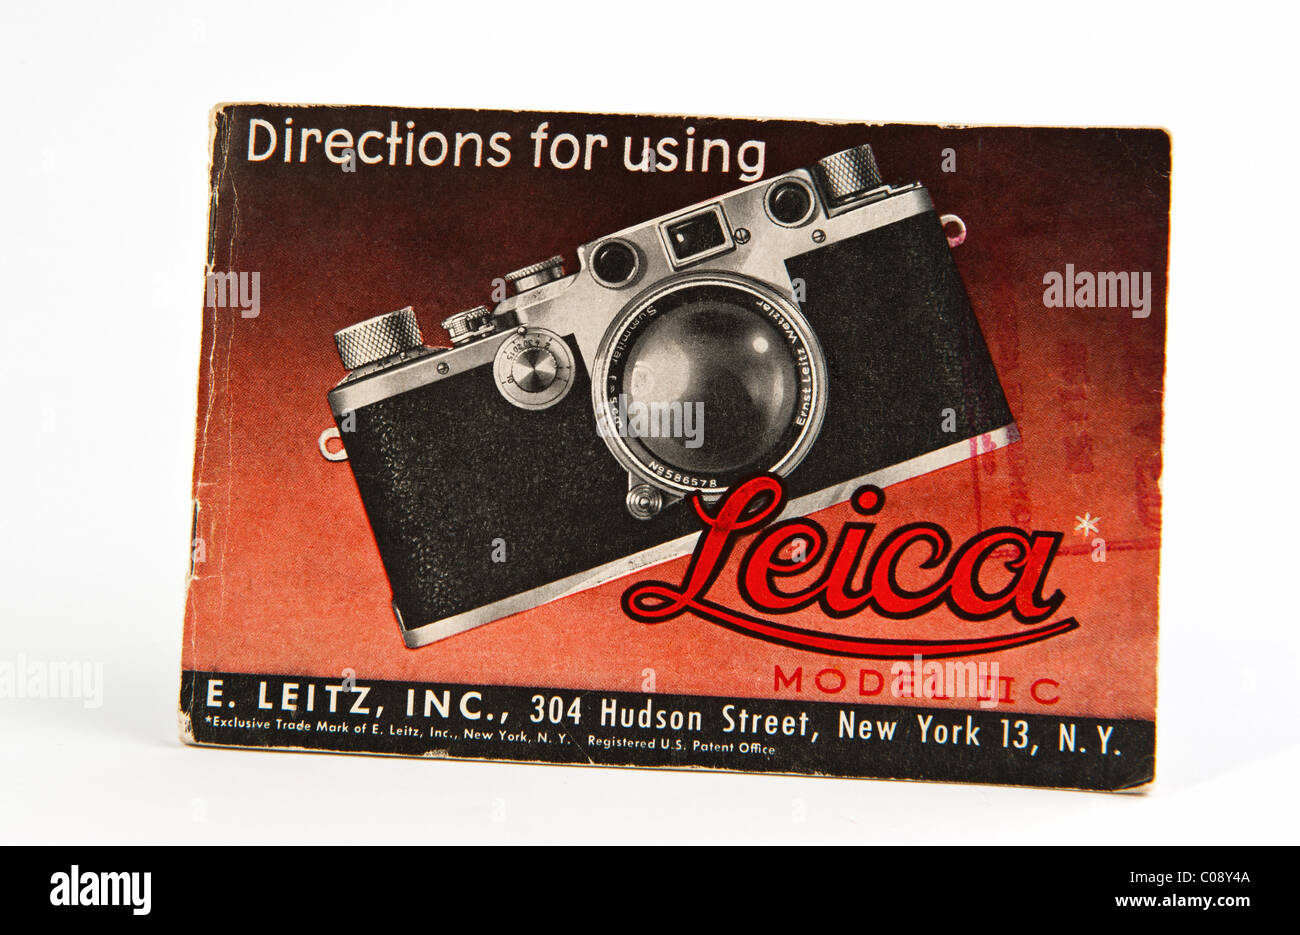 Leica camera Model 3 III C instruction Manual - Stock Image